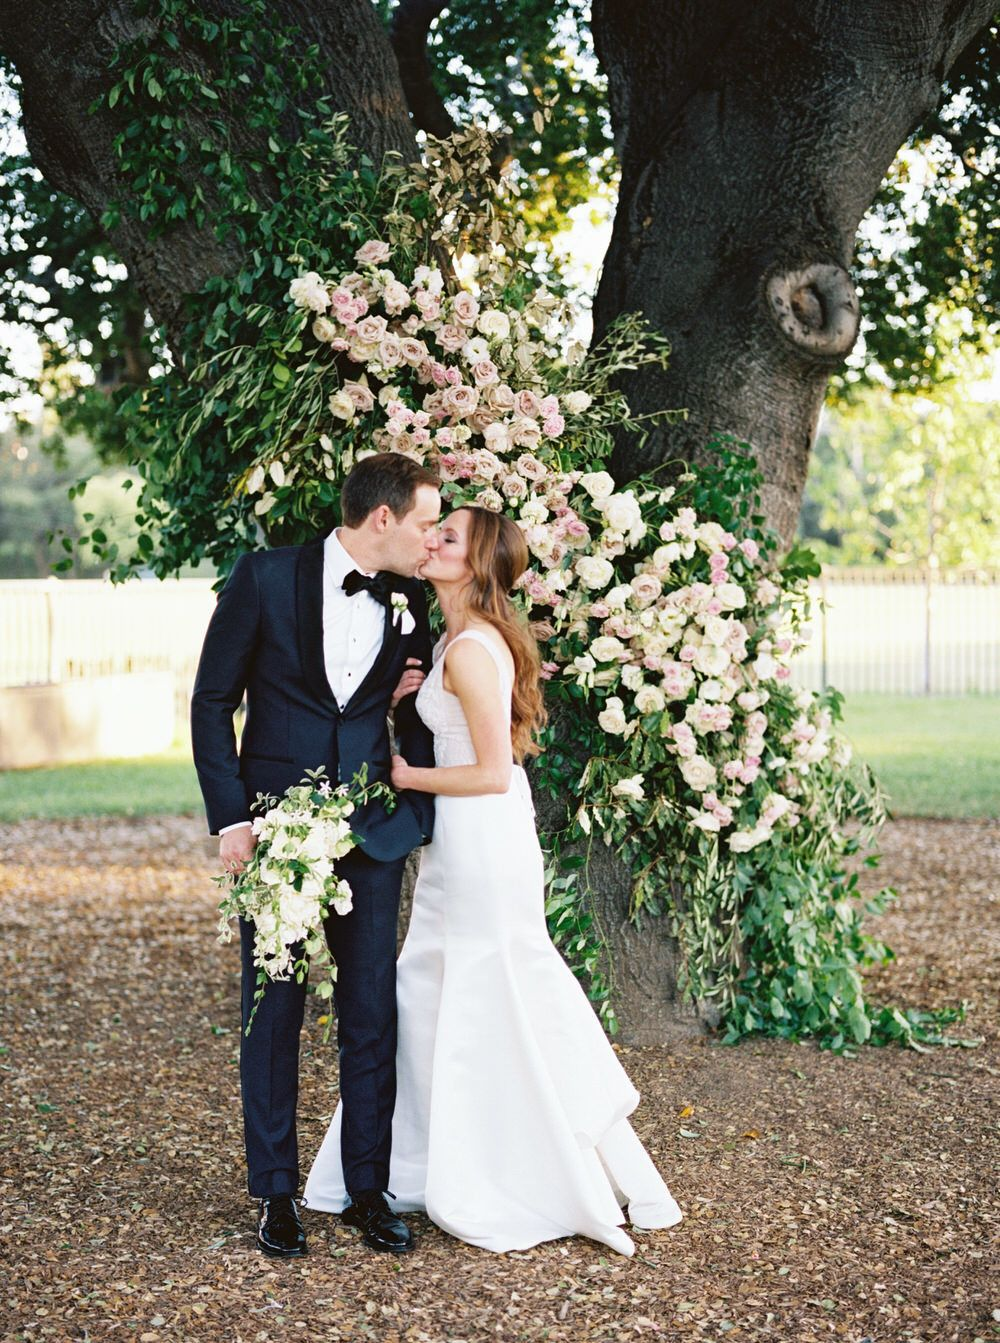 bride and groom kiss under a tree with a lush floral installation